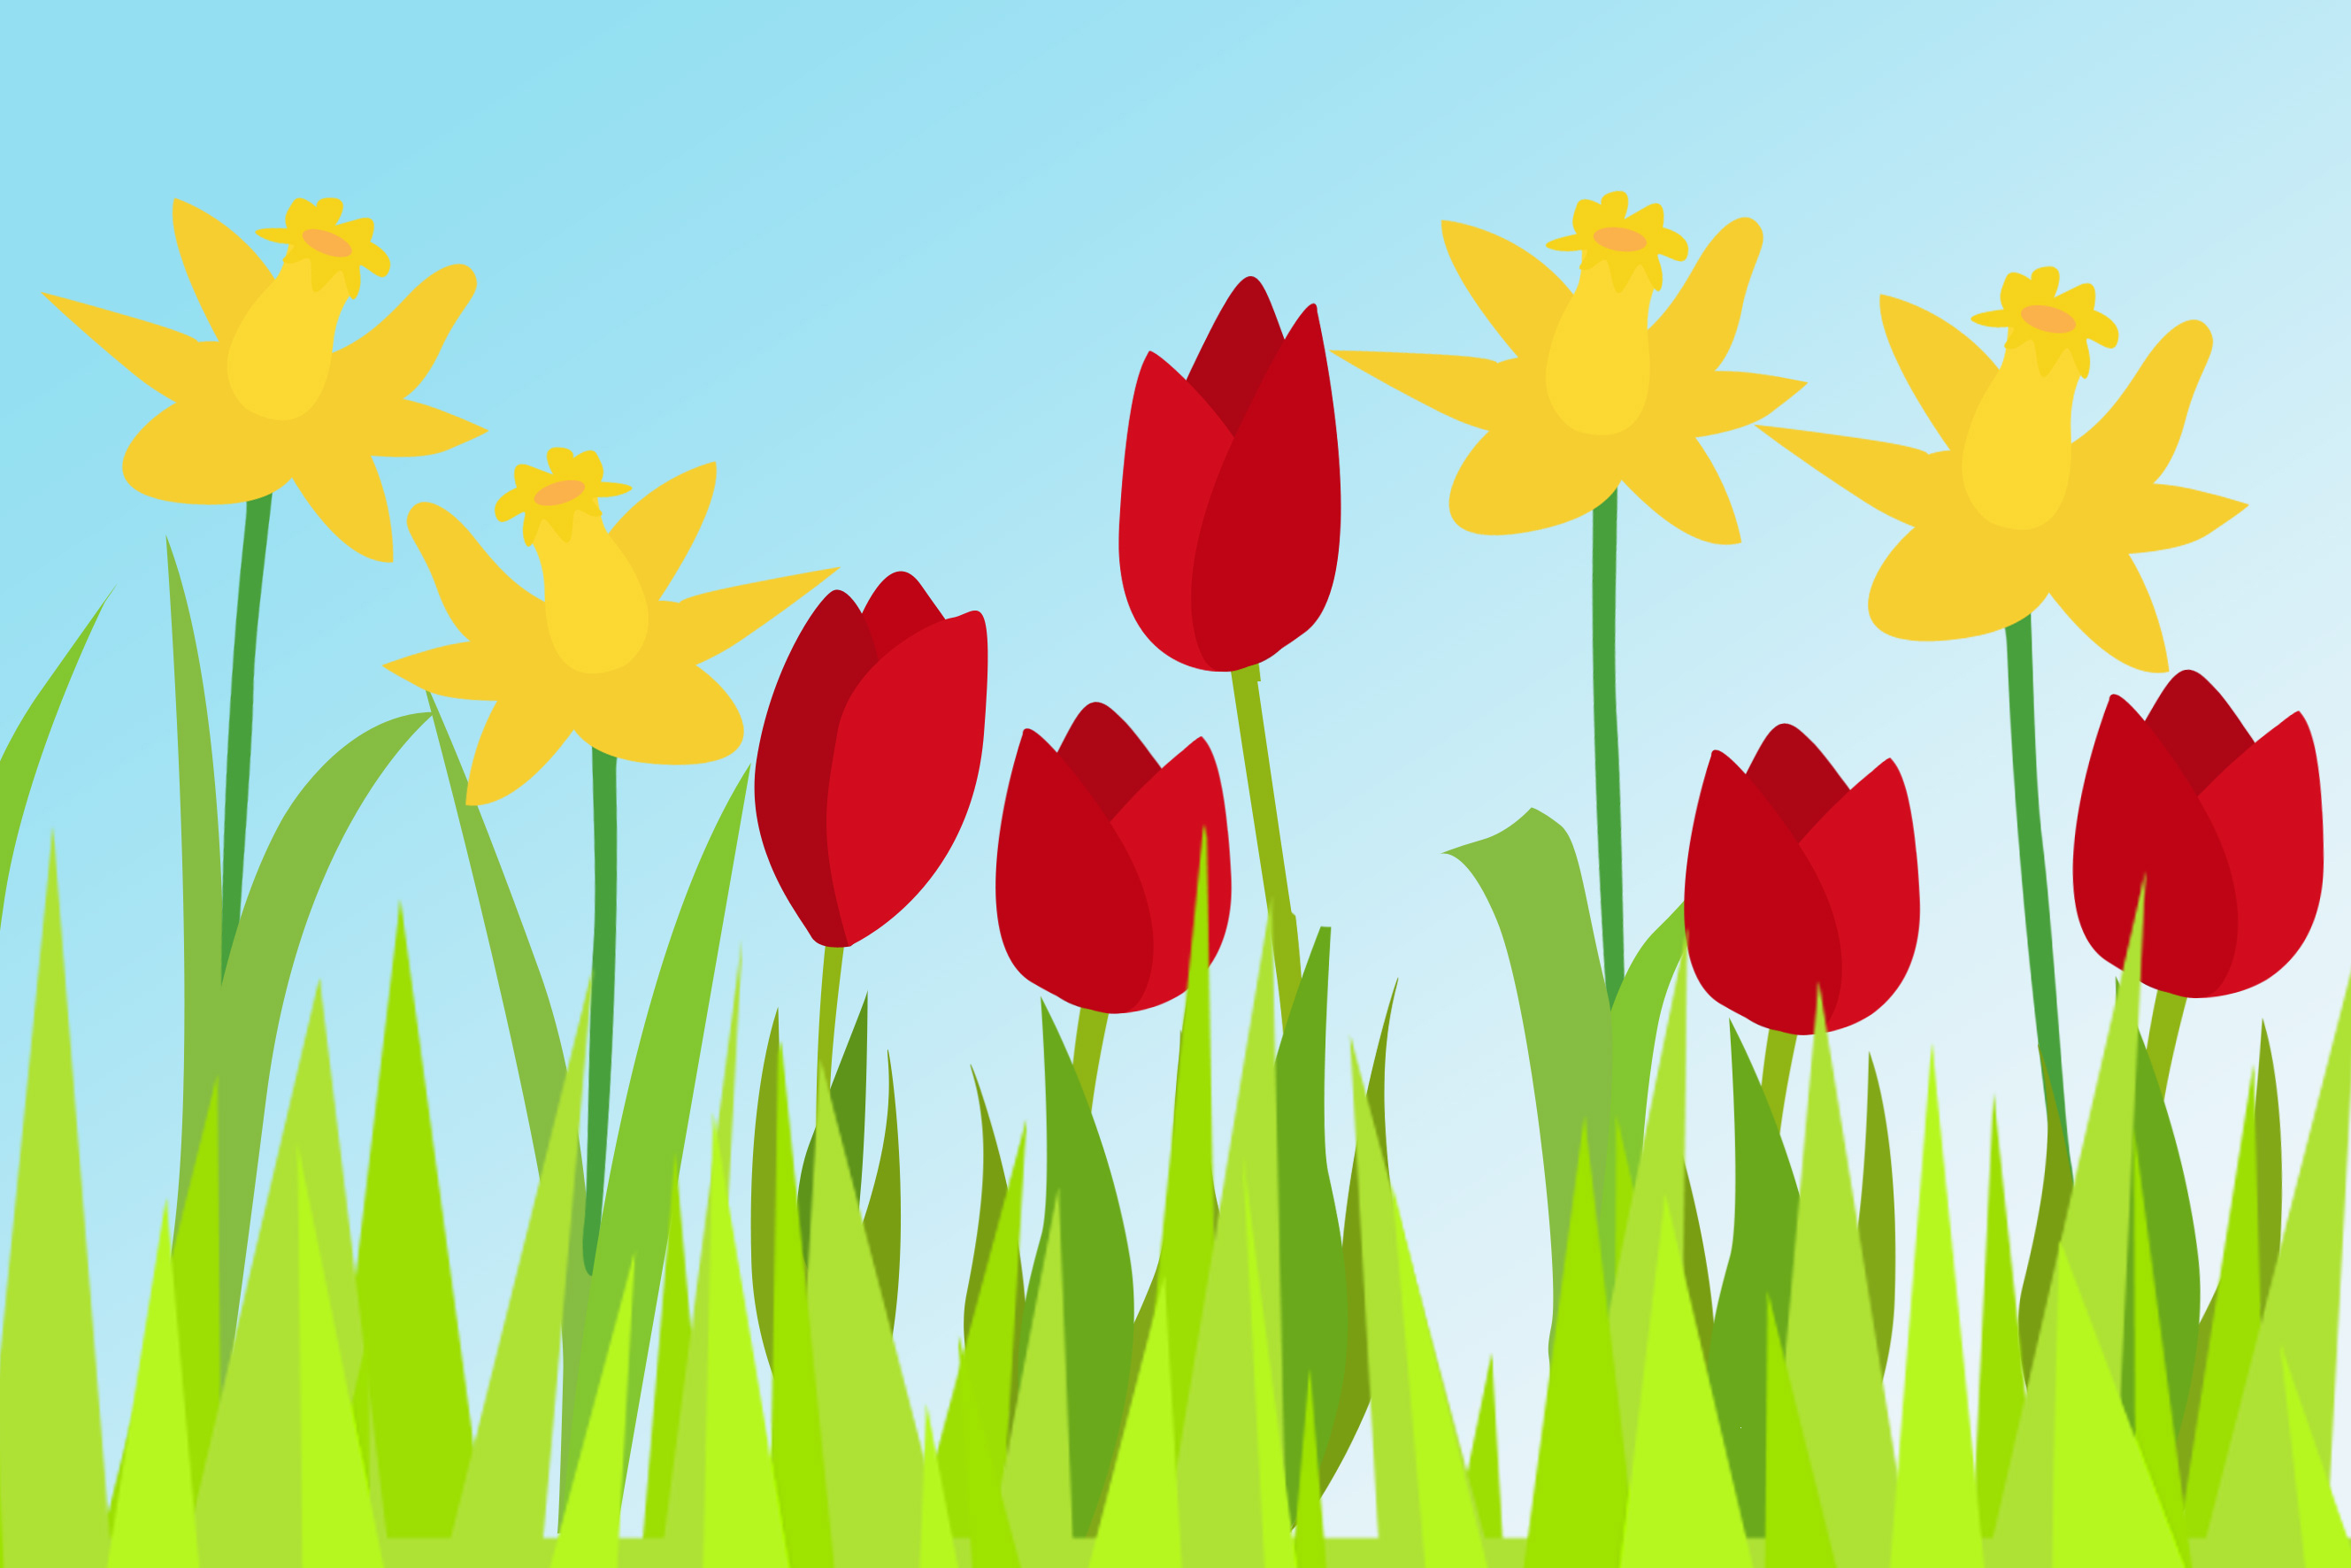 Daffodils And Tulips Free Early Years Primary Teaching Resources